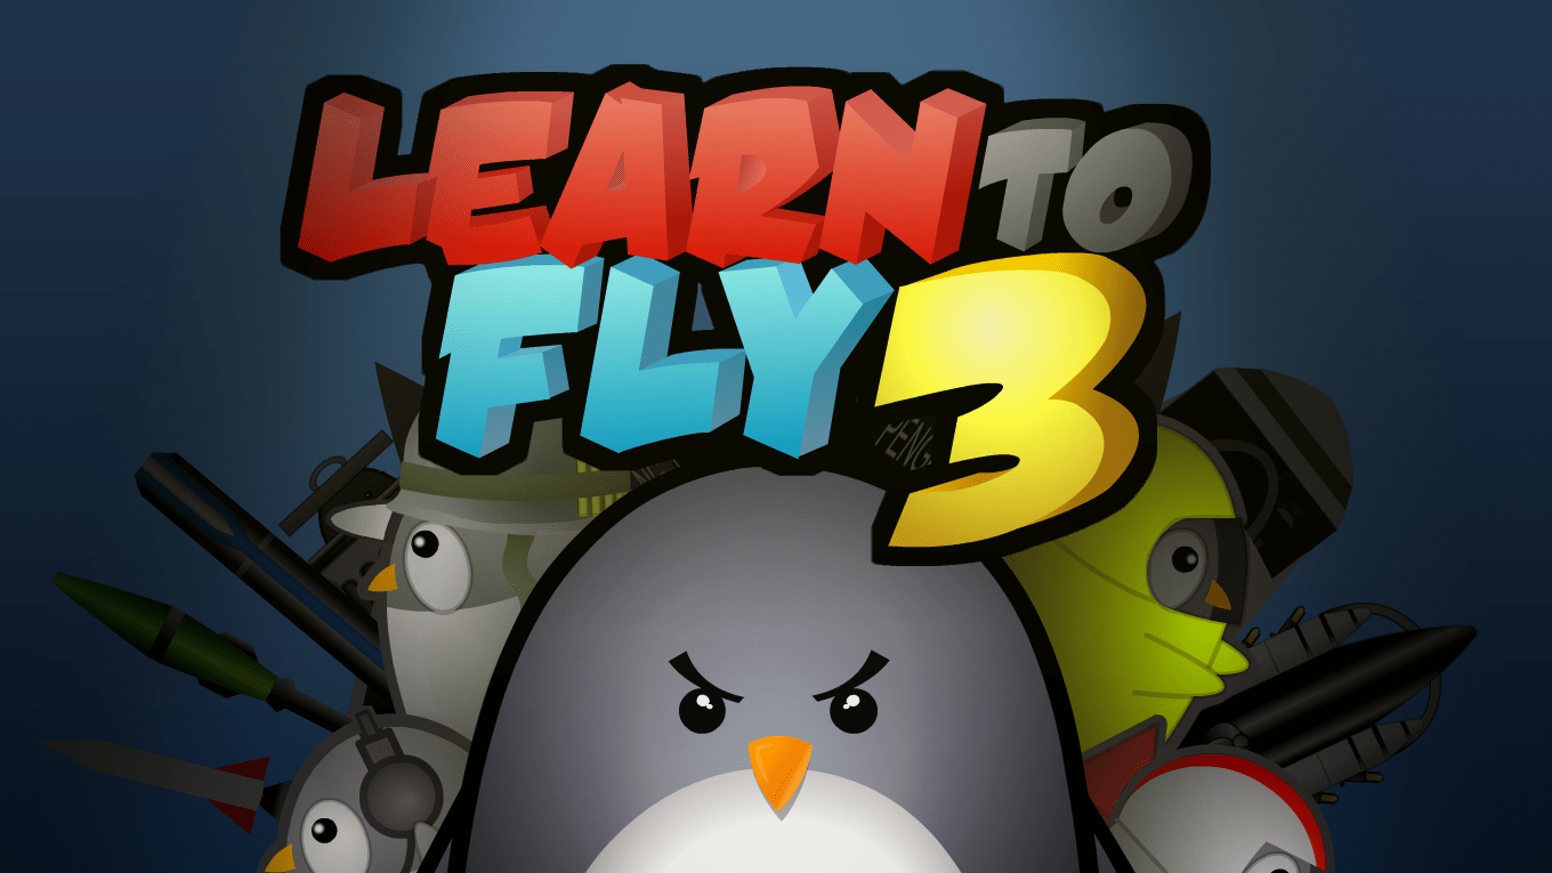 Learn to Fly 3 Codes and Cheats